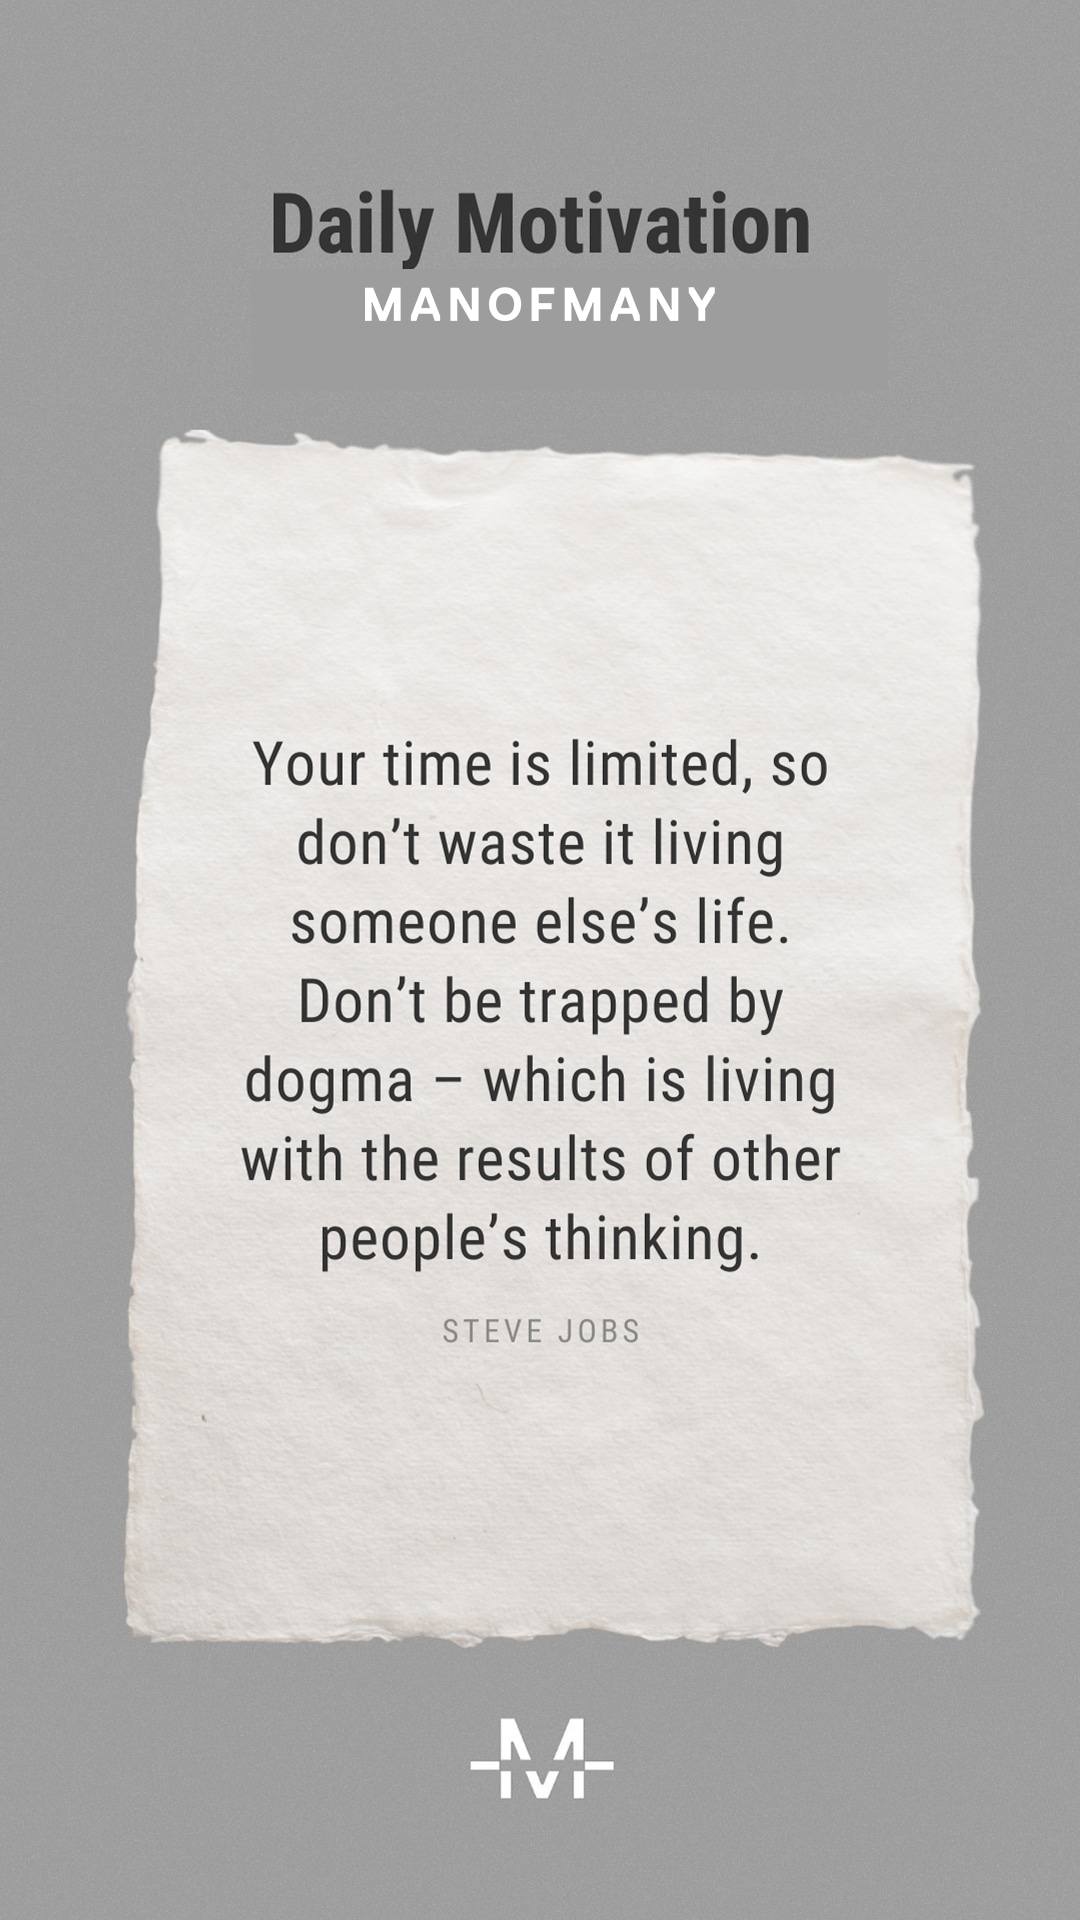 Your time is limited, so don't waste it living someone else's life. Don't be trapped by dogma – which is living with the results of other people's thinking. – Steve Jobs quote